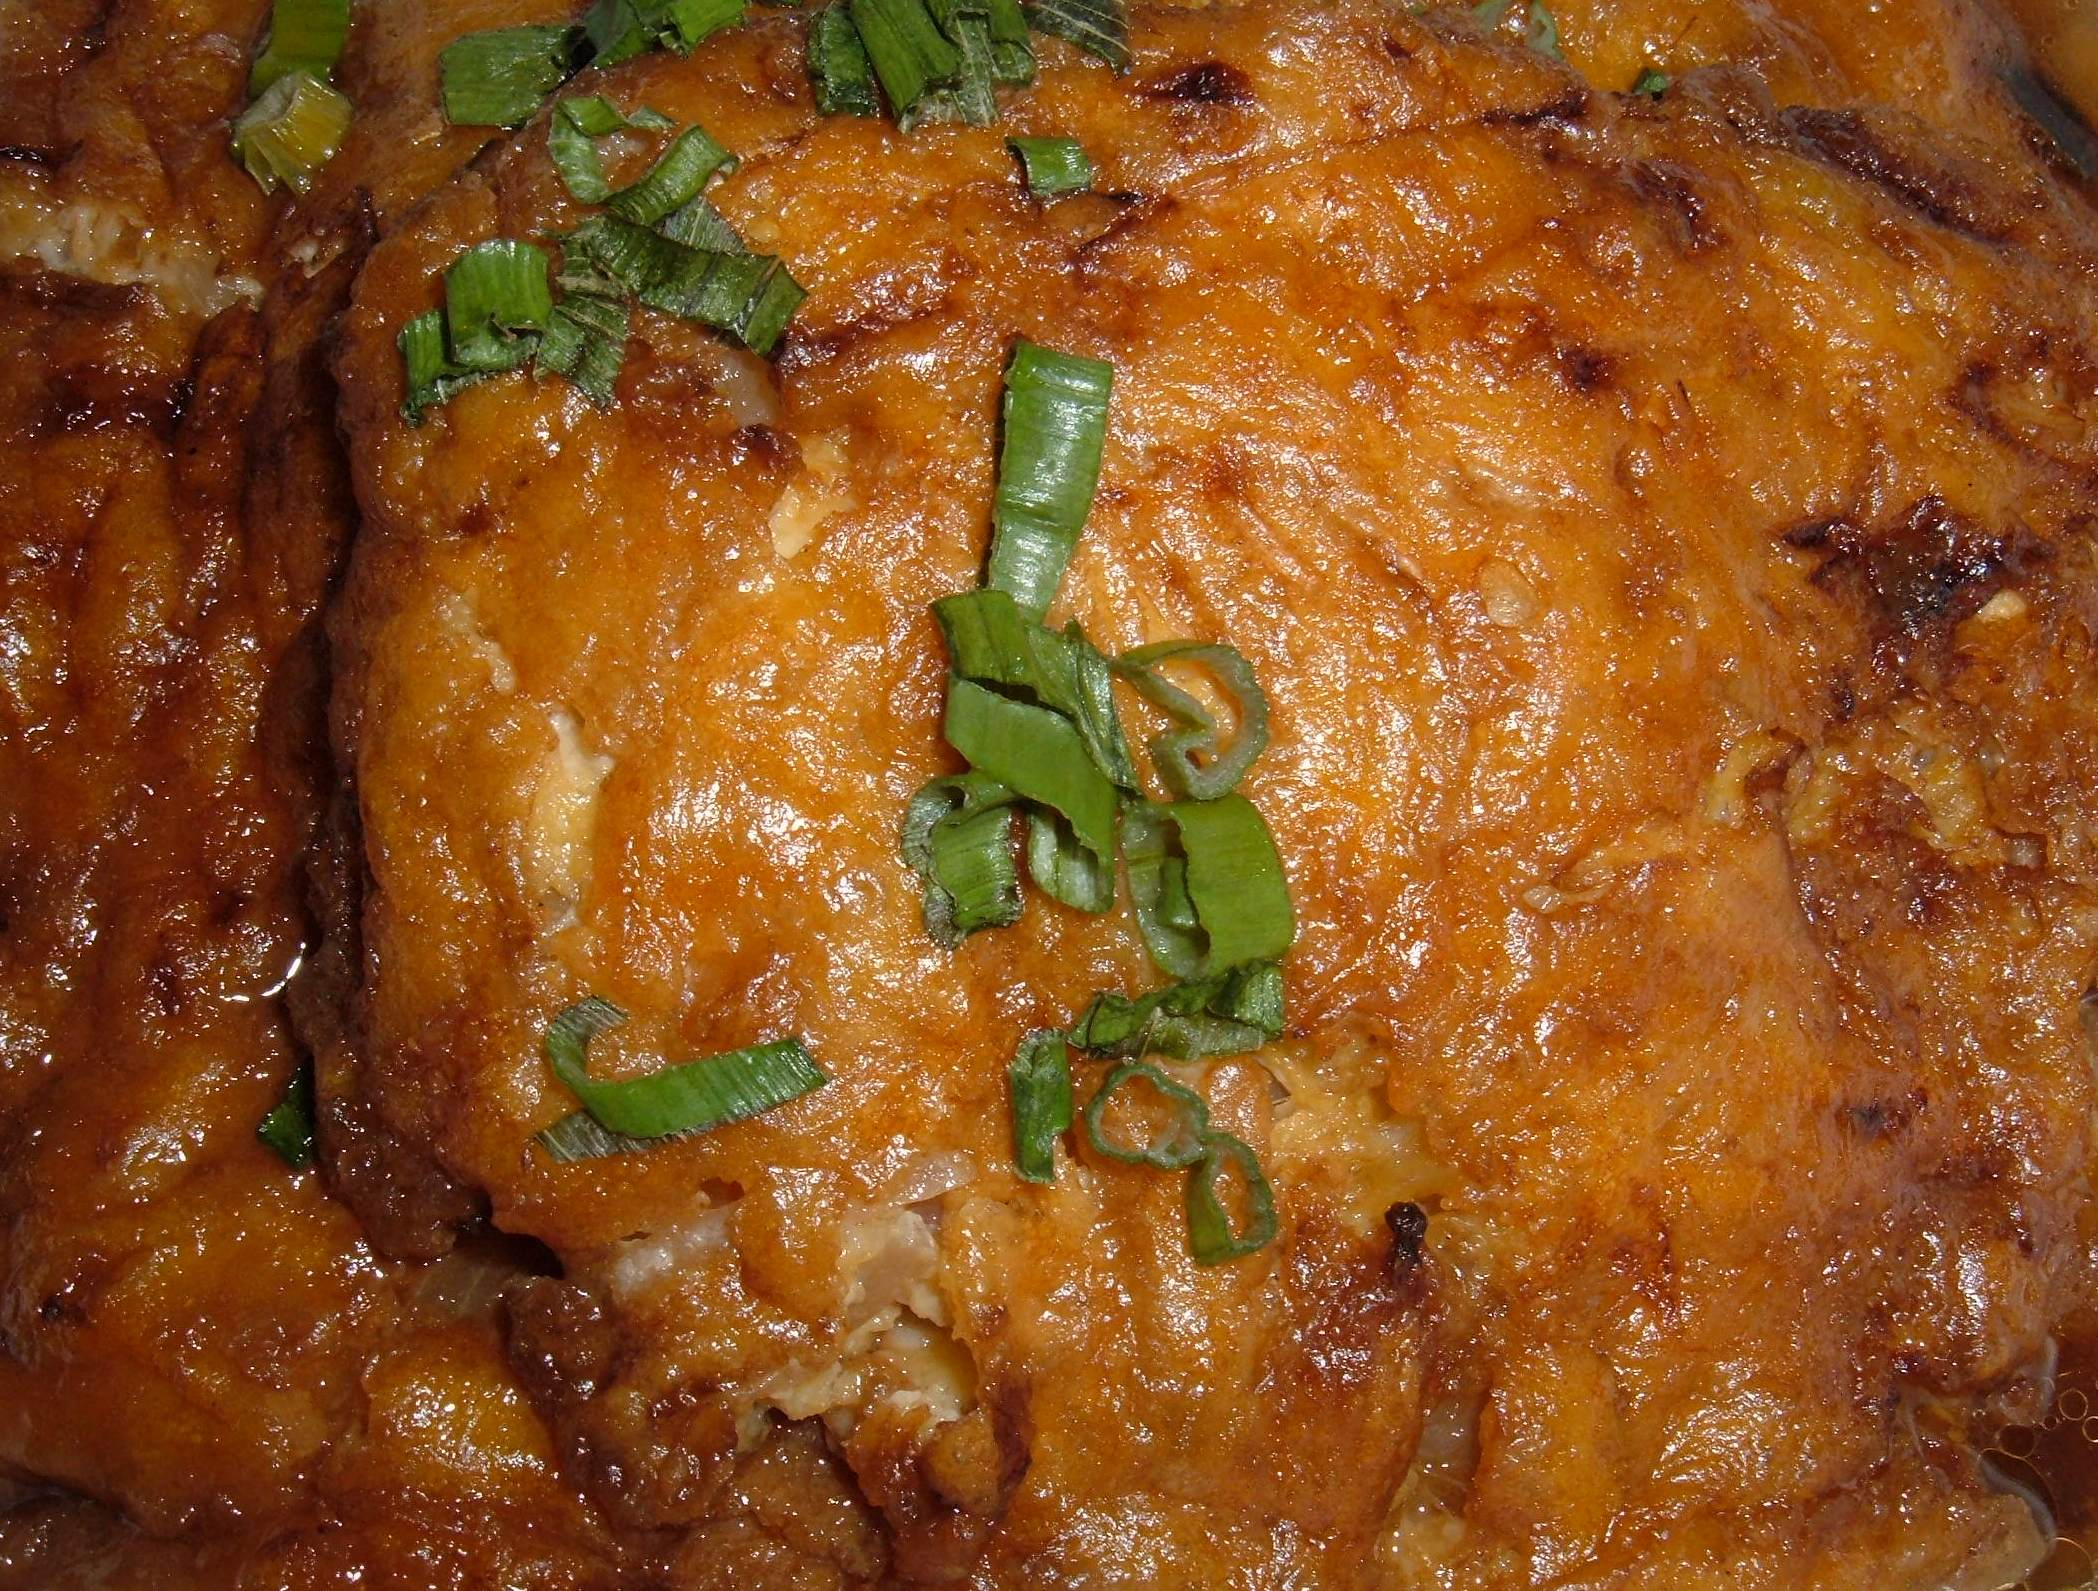 File:Egg foo young.JPG - Wikimedia Commons